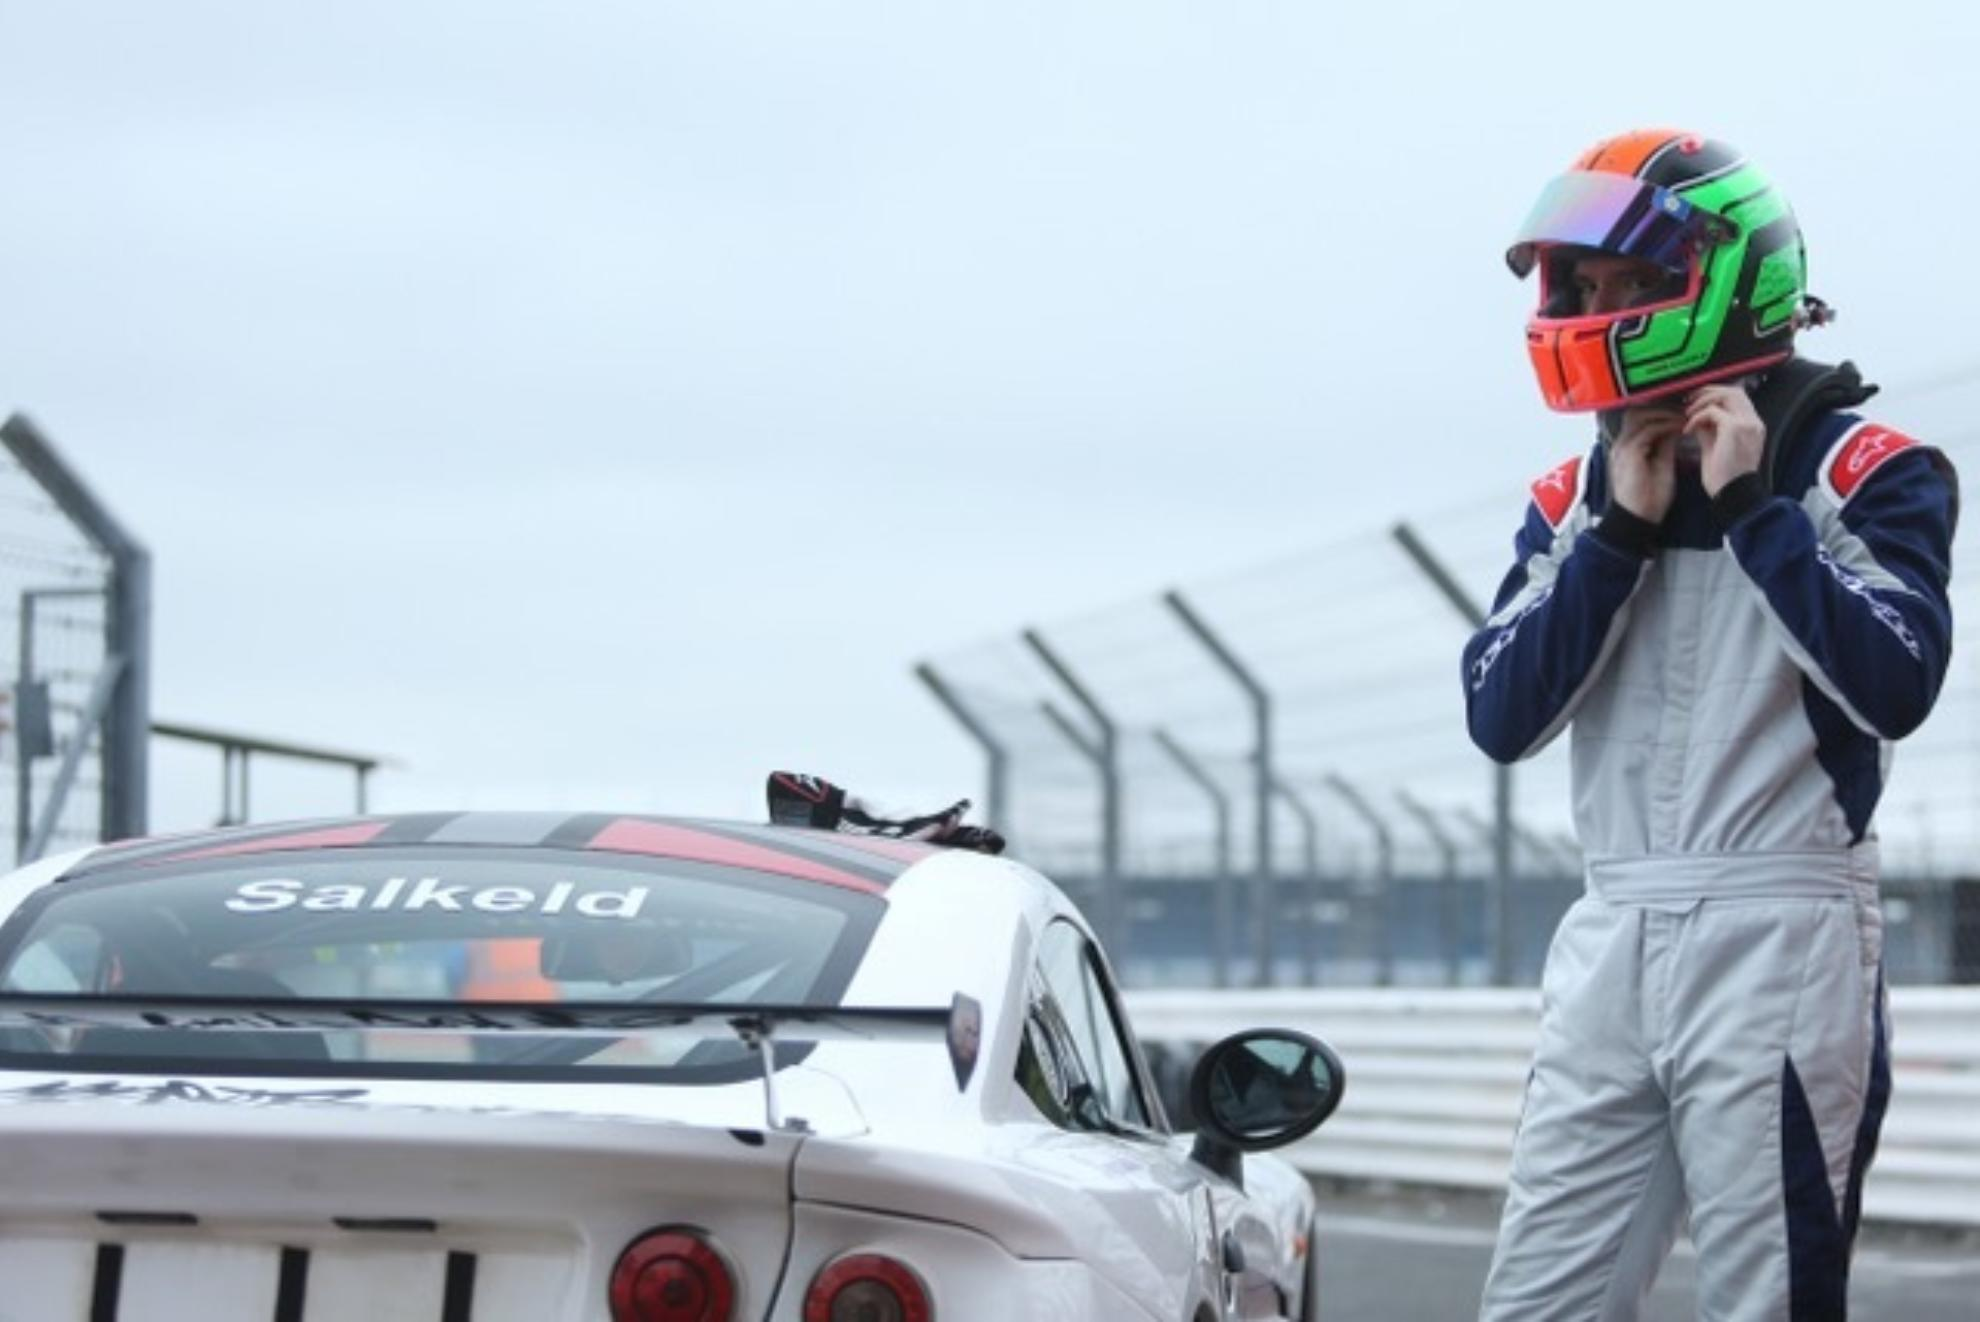 Chris Salkeld Graduates To Ginetta G40 Cup With Assetto Motorsport